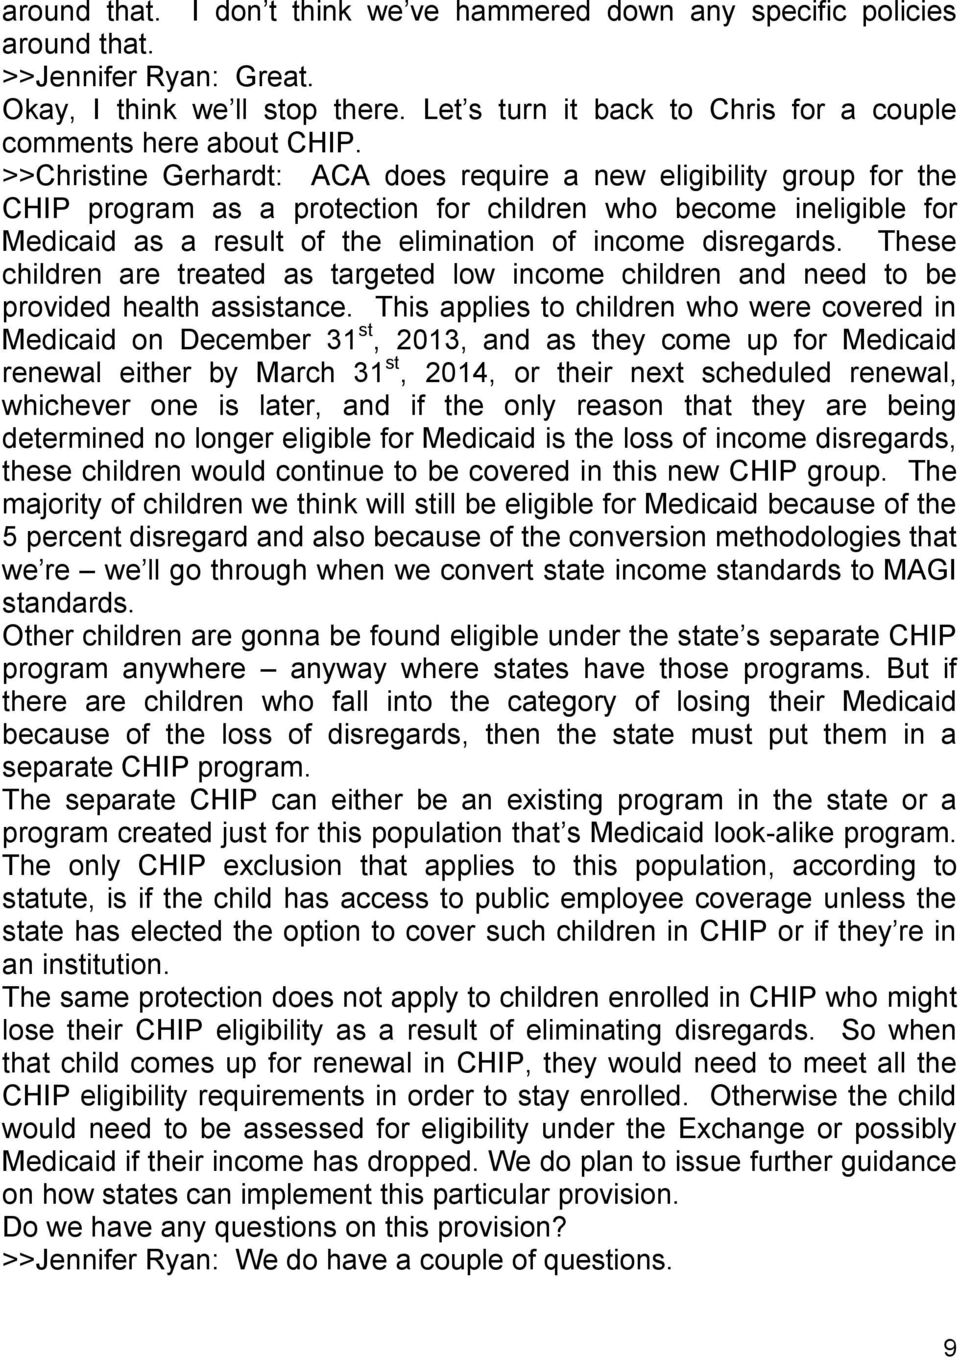 >>Christine Gerhardt: ACA does require a new eligibility group for the CHIP program as a protection for children who become ineligible for Medicaid as a result of the elimination of income disregards.